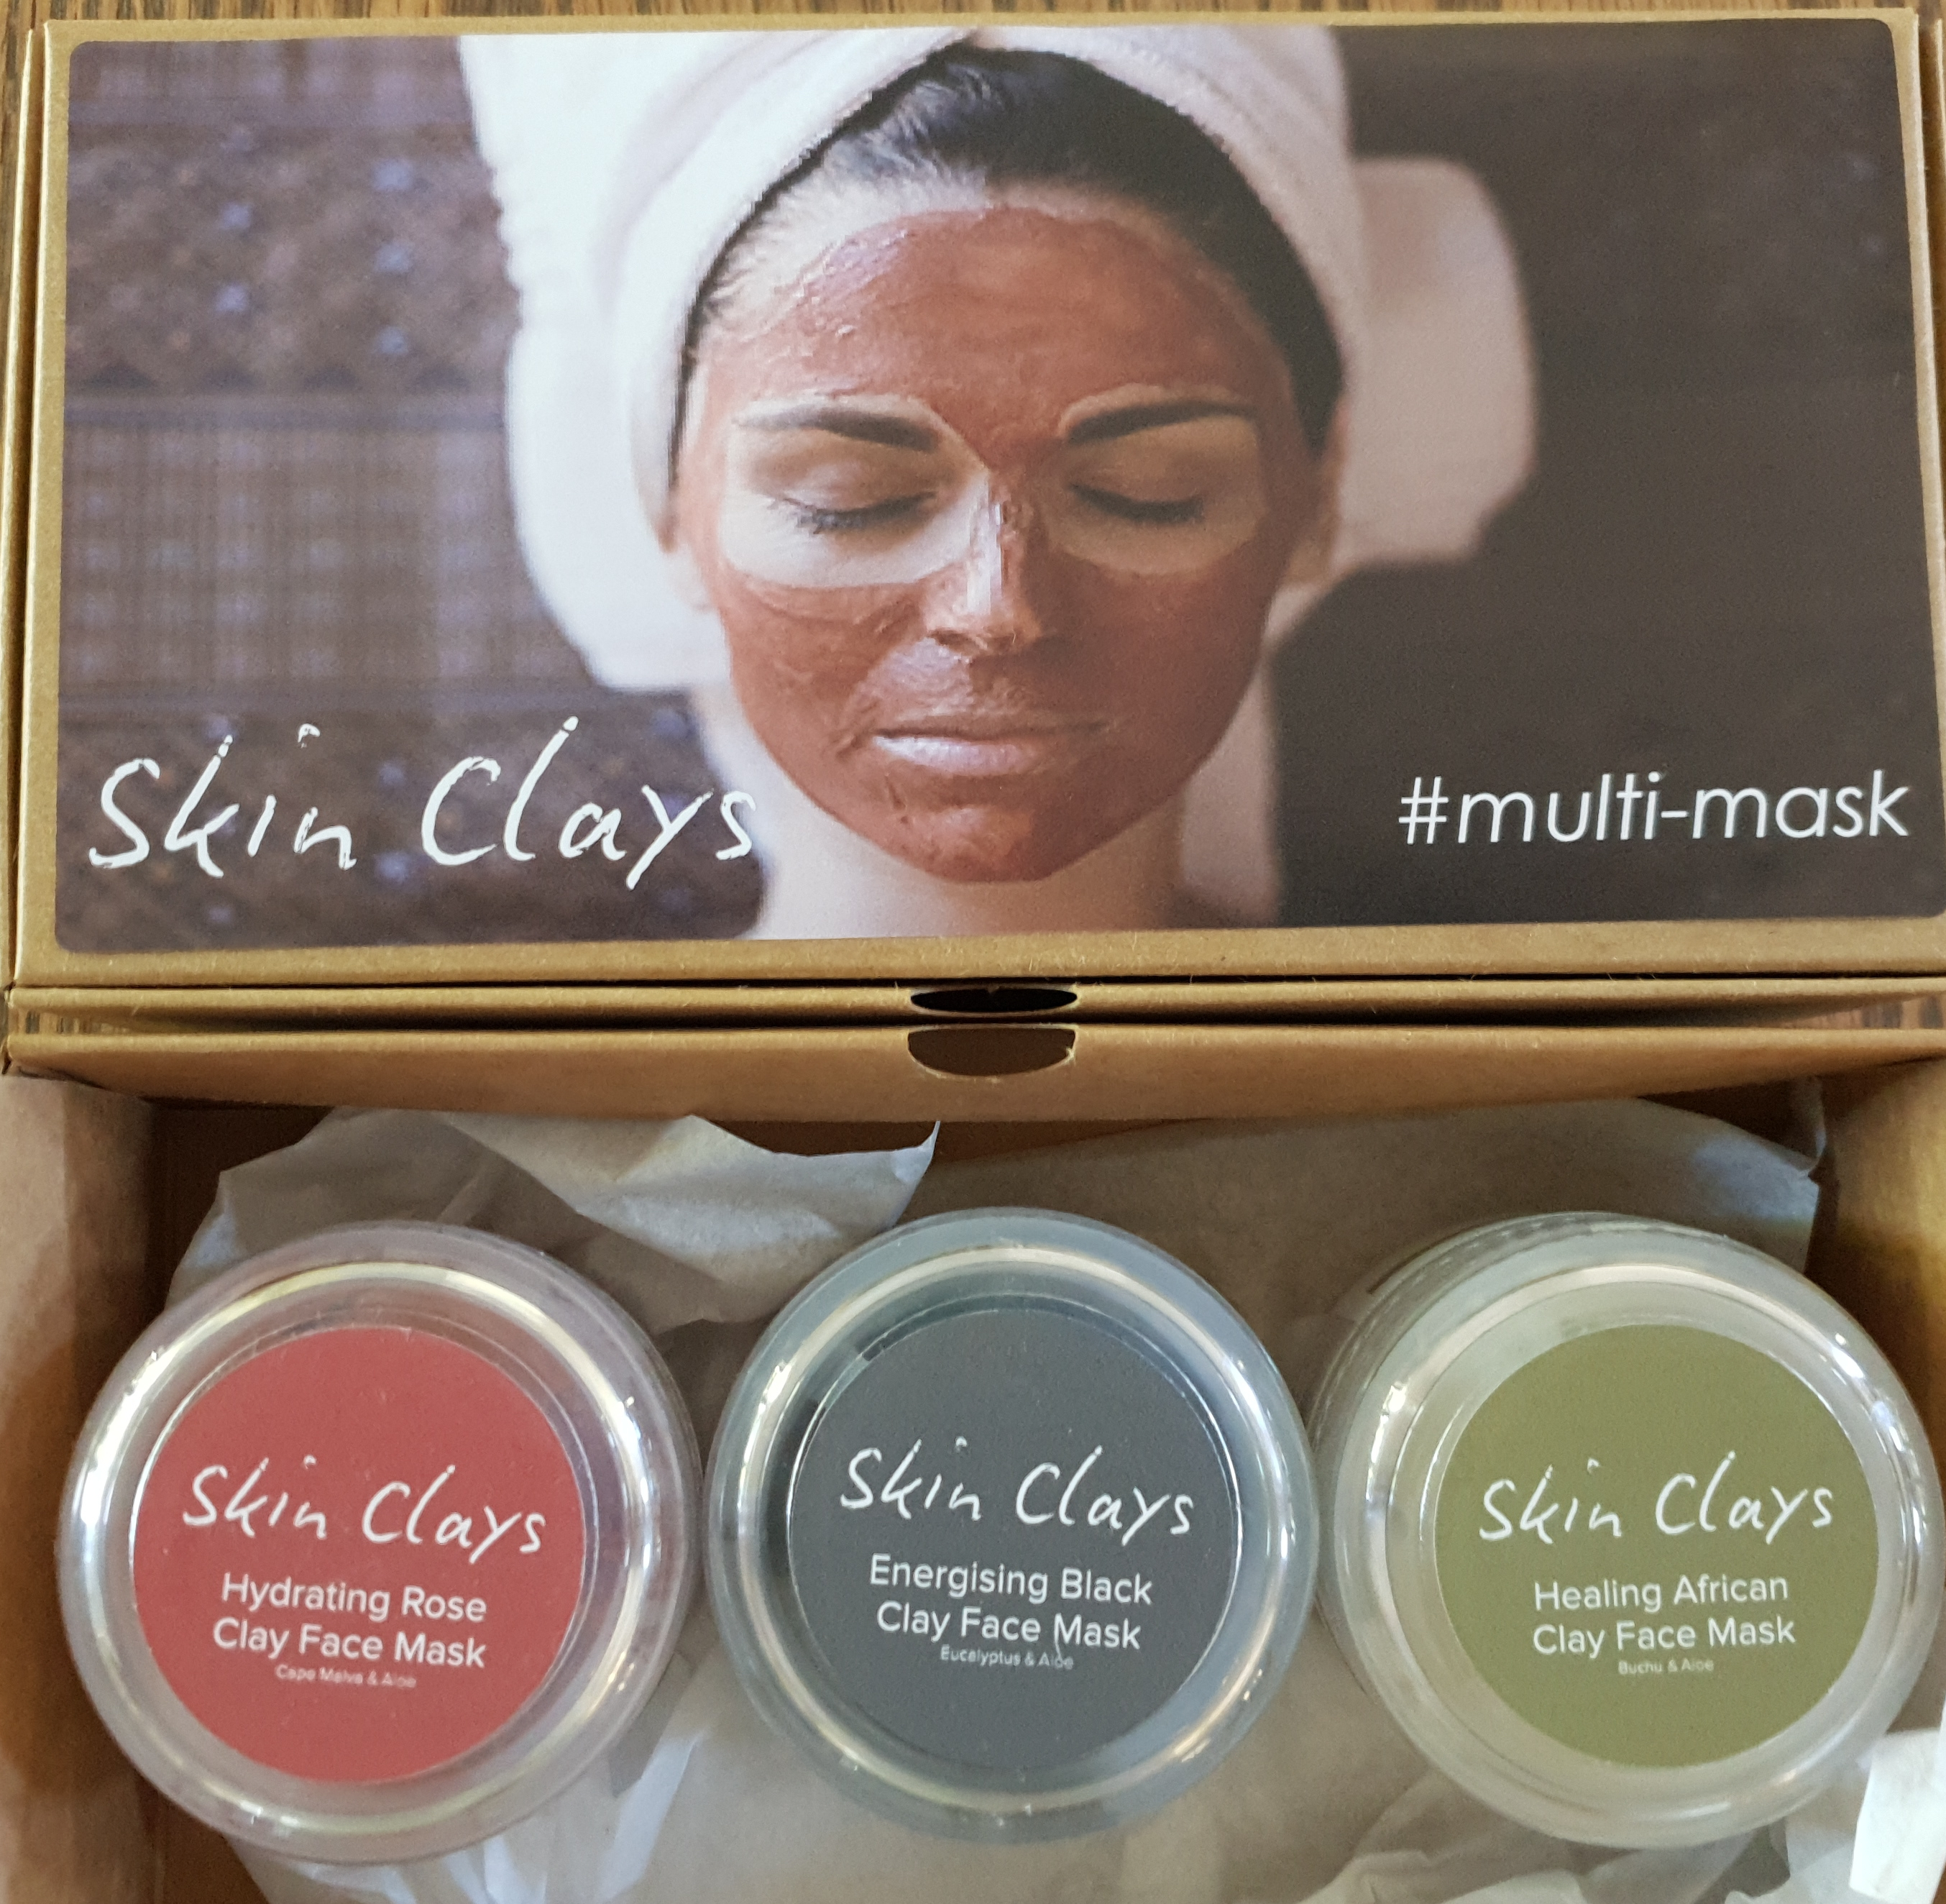 Your #Multi-Mask Gift Set incl.  1 box  1 Energizing Black Face Mask (50g)  1 Buchu Face Mask (50g)  1 Cape Malva Hydrating Face Mask (50g)  (see the individual products listed to learn more about each product ingredient list)  Use different masks on the different areas if the face to focus on a specific need per area, or use a different mask each week to boost, energize, detox, hydrate or heal your skin.